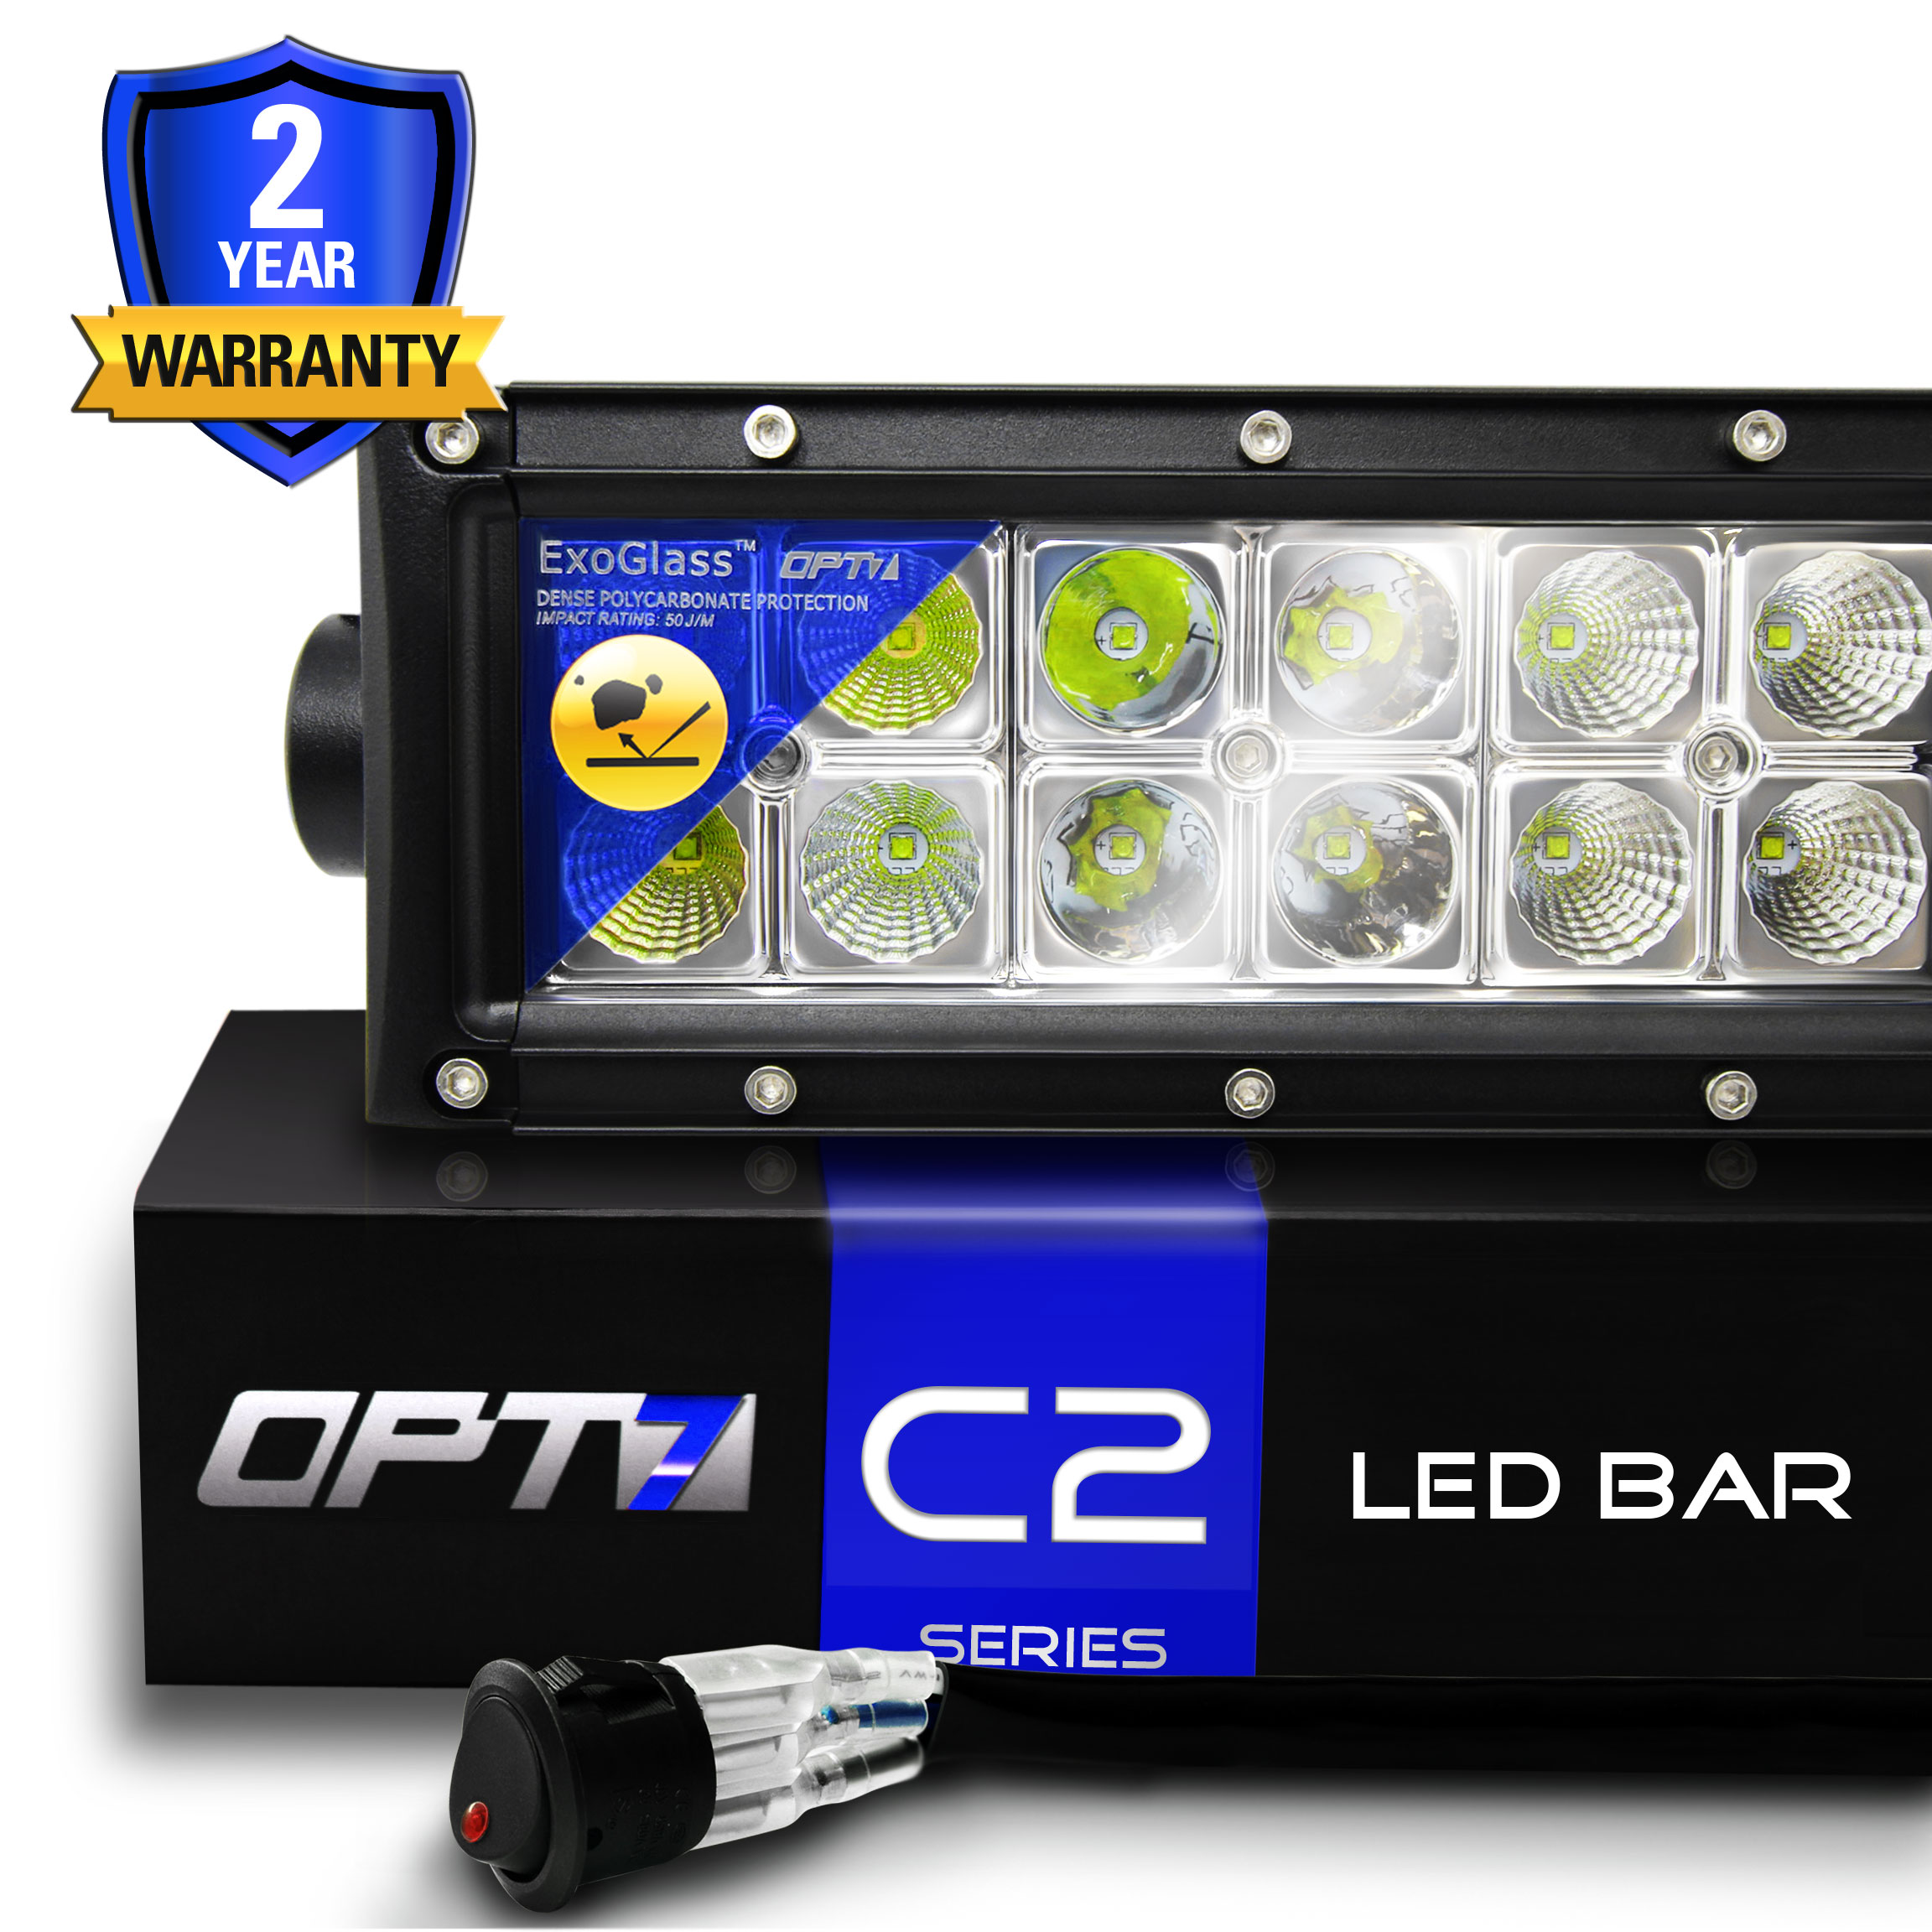 C2 switch Var opt7 automotive lighting ebay stores  at gsmx.co